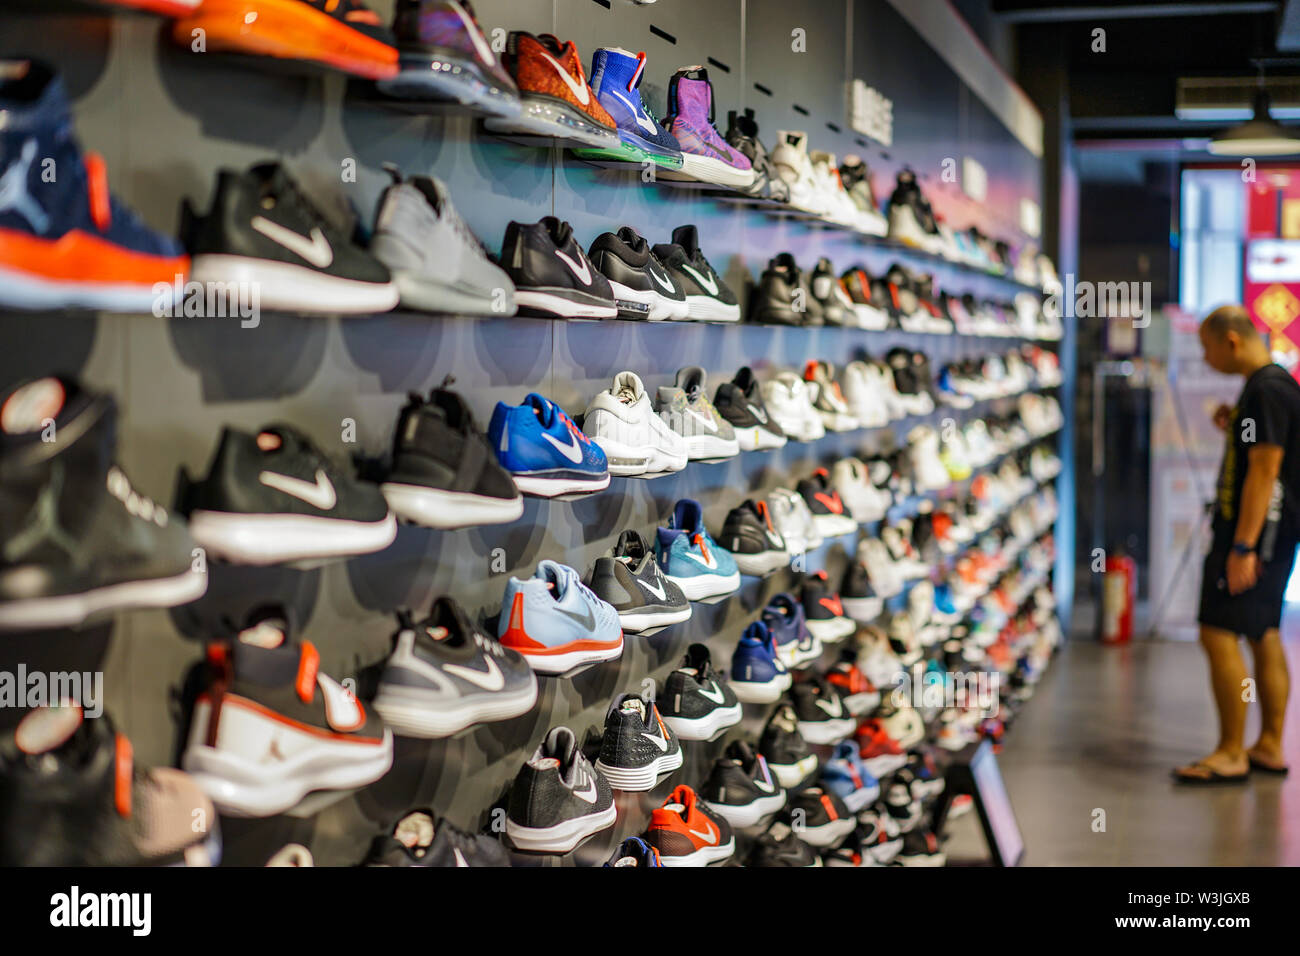 Nike Shop Immagini e Fotos Stock Alamy